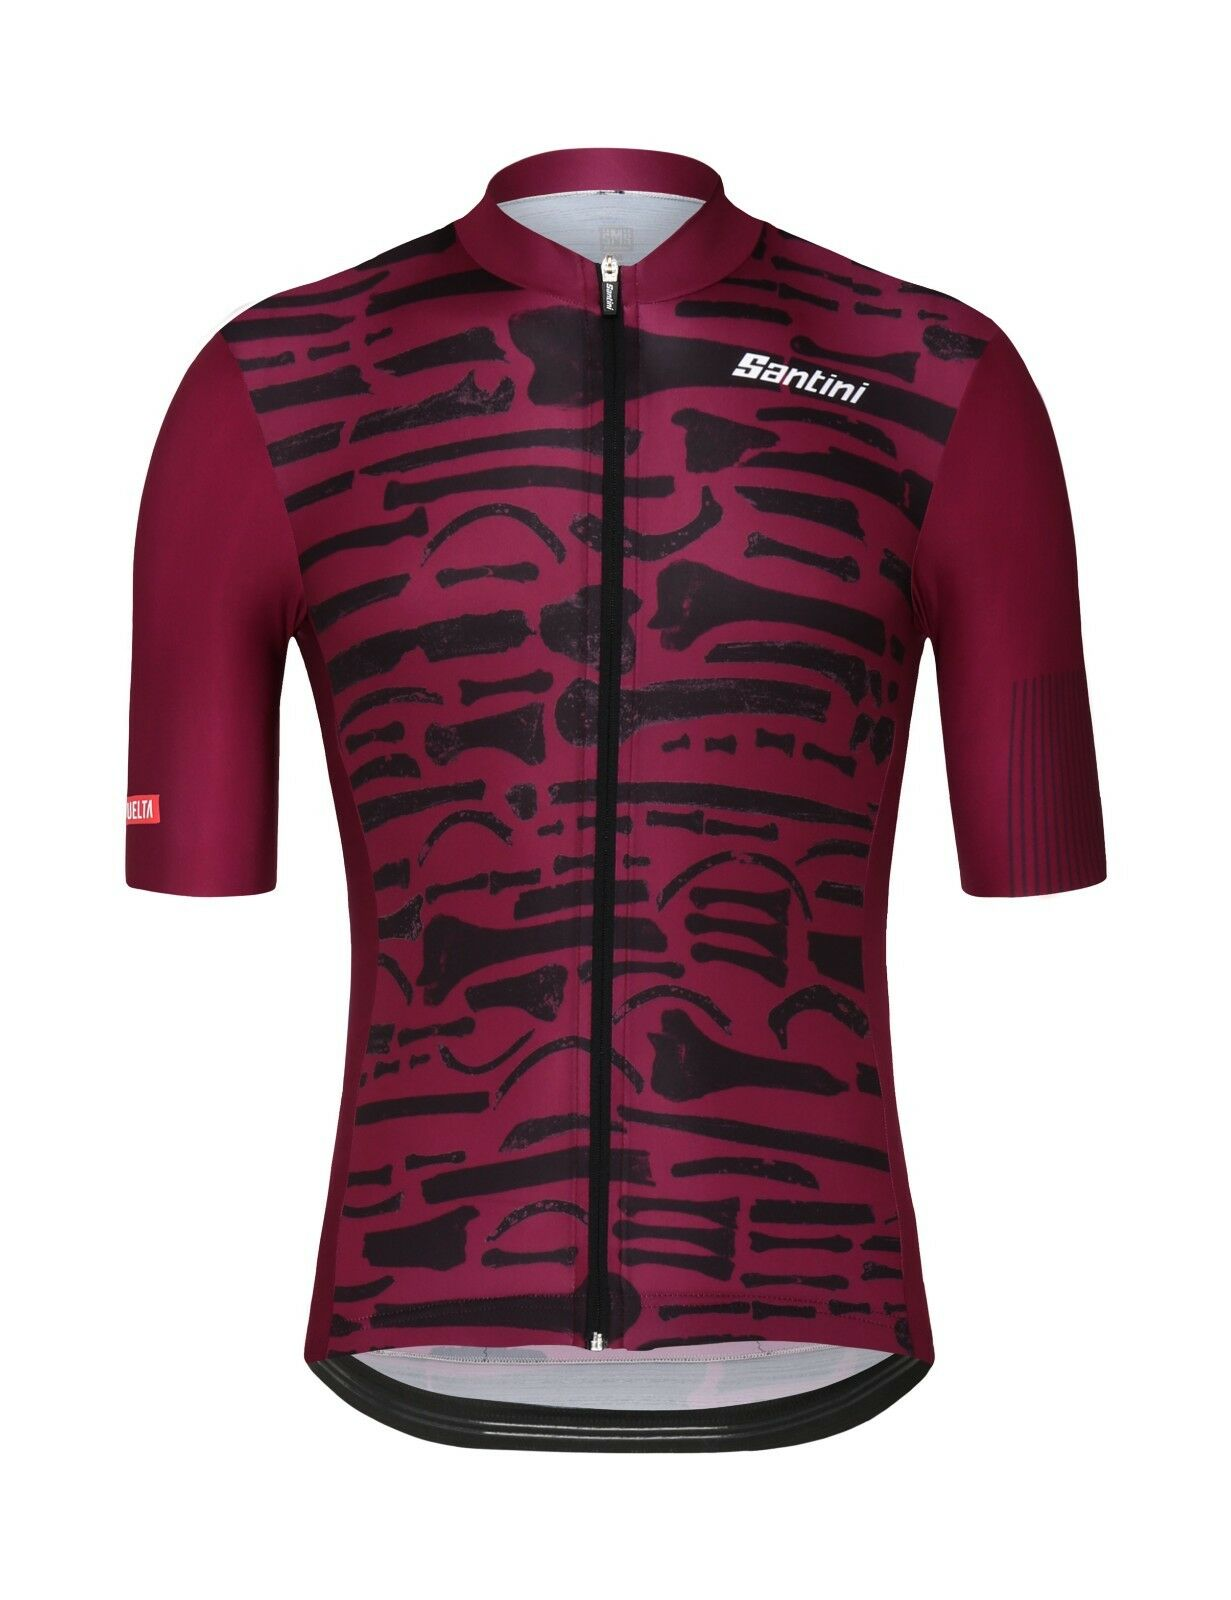 2018 La Vuelta Huesera Cycling Jersey  Made in in in  by Santini 57ffc4